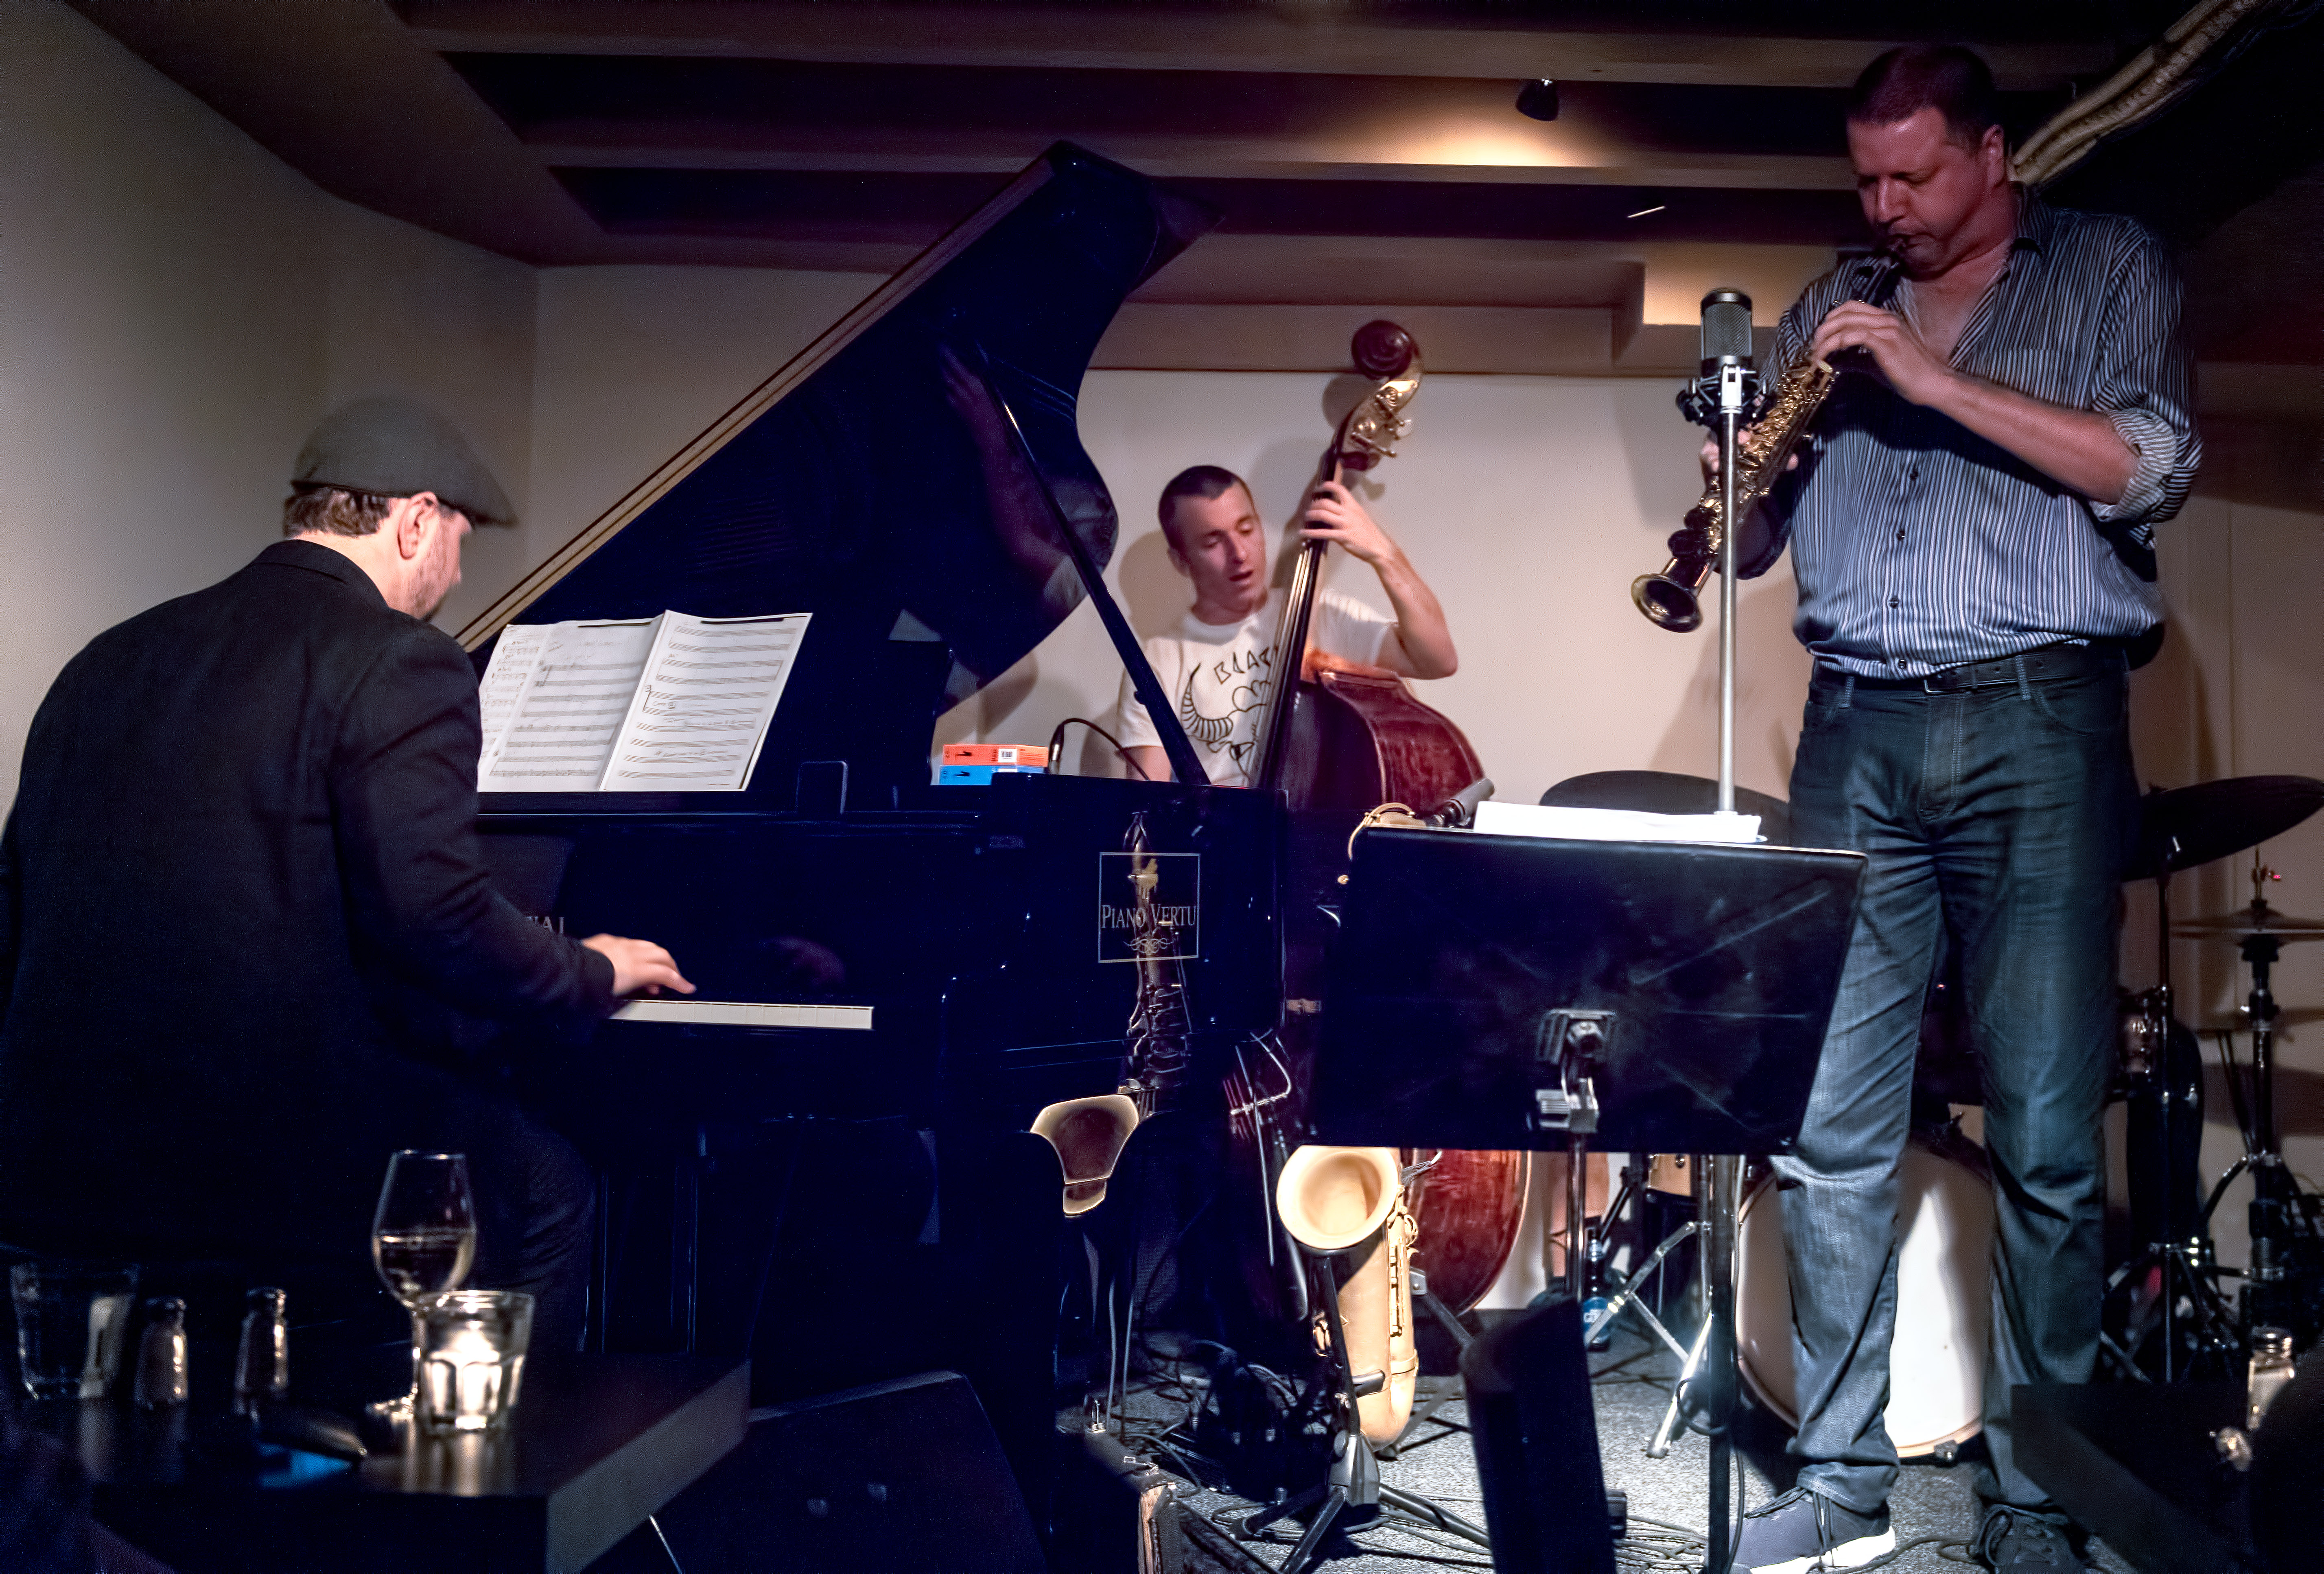 Paul Shrofel, Al Bourgeois, Remi-jean Leblanc And Al Mclean Pays Homage To Coltrane Plays The Blues At The Montreal International Jazz Festival 2018